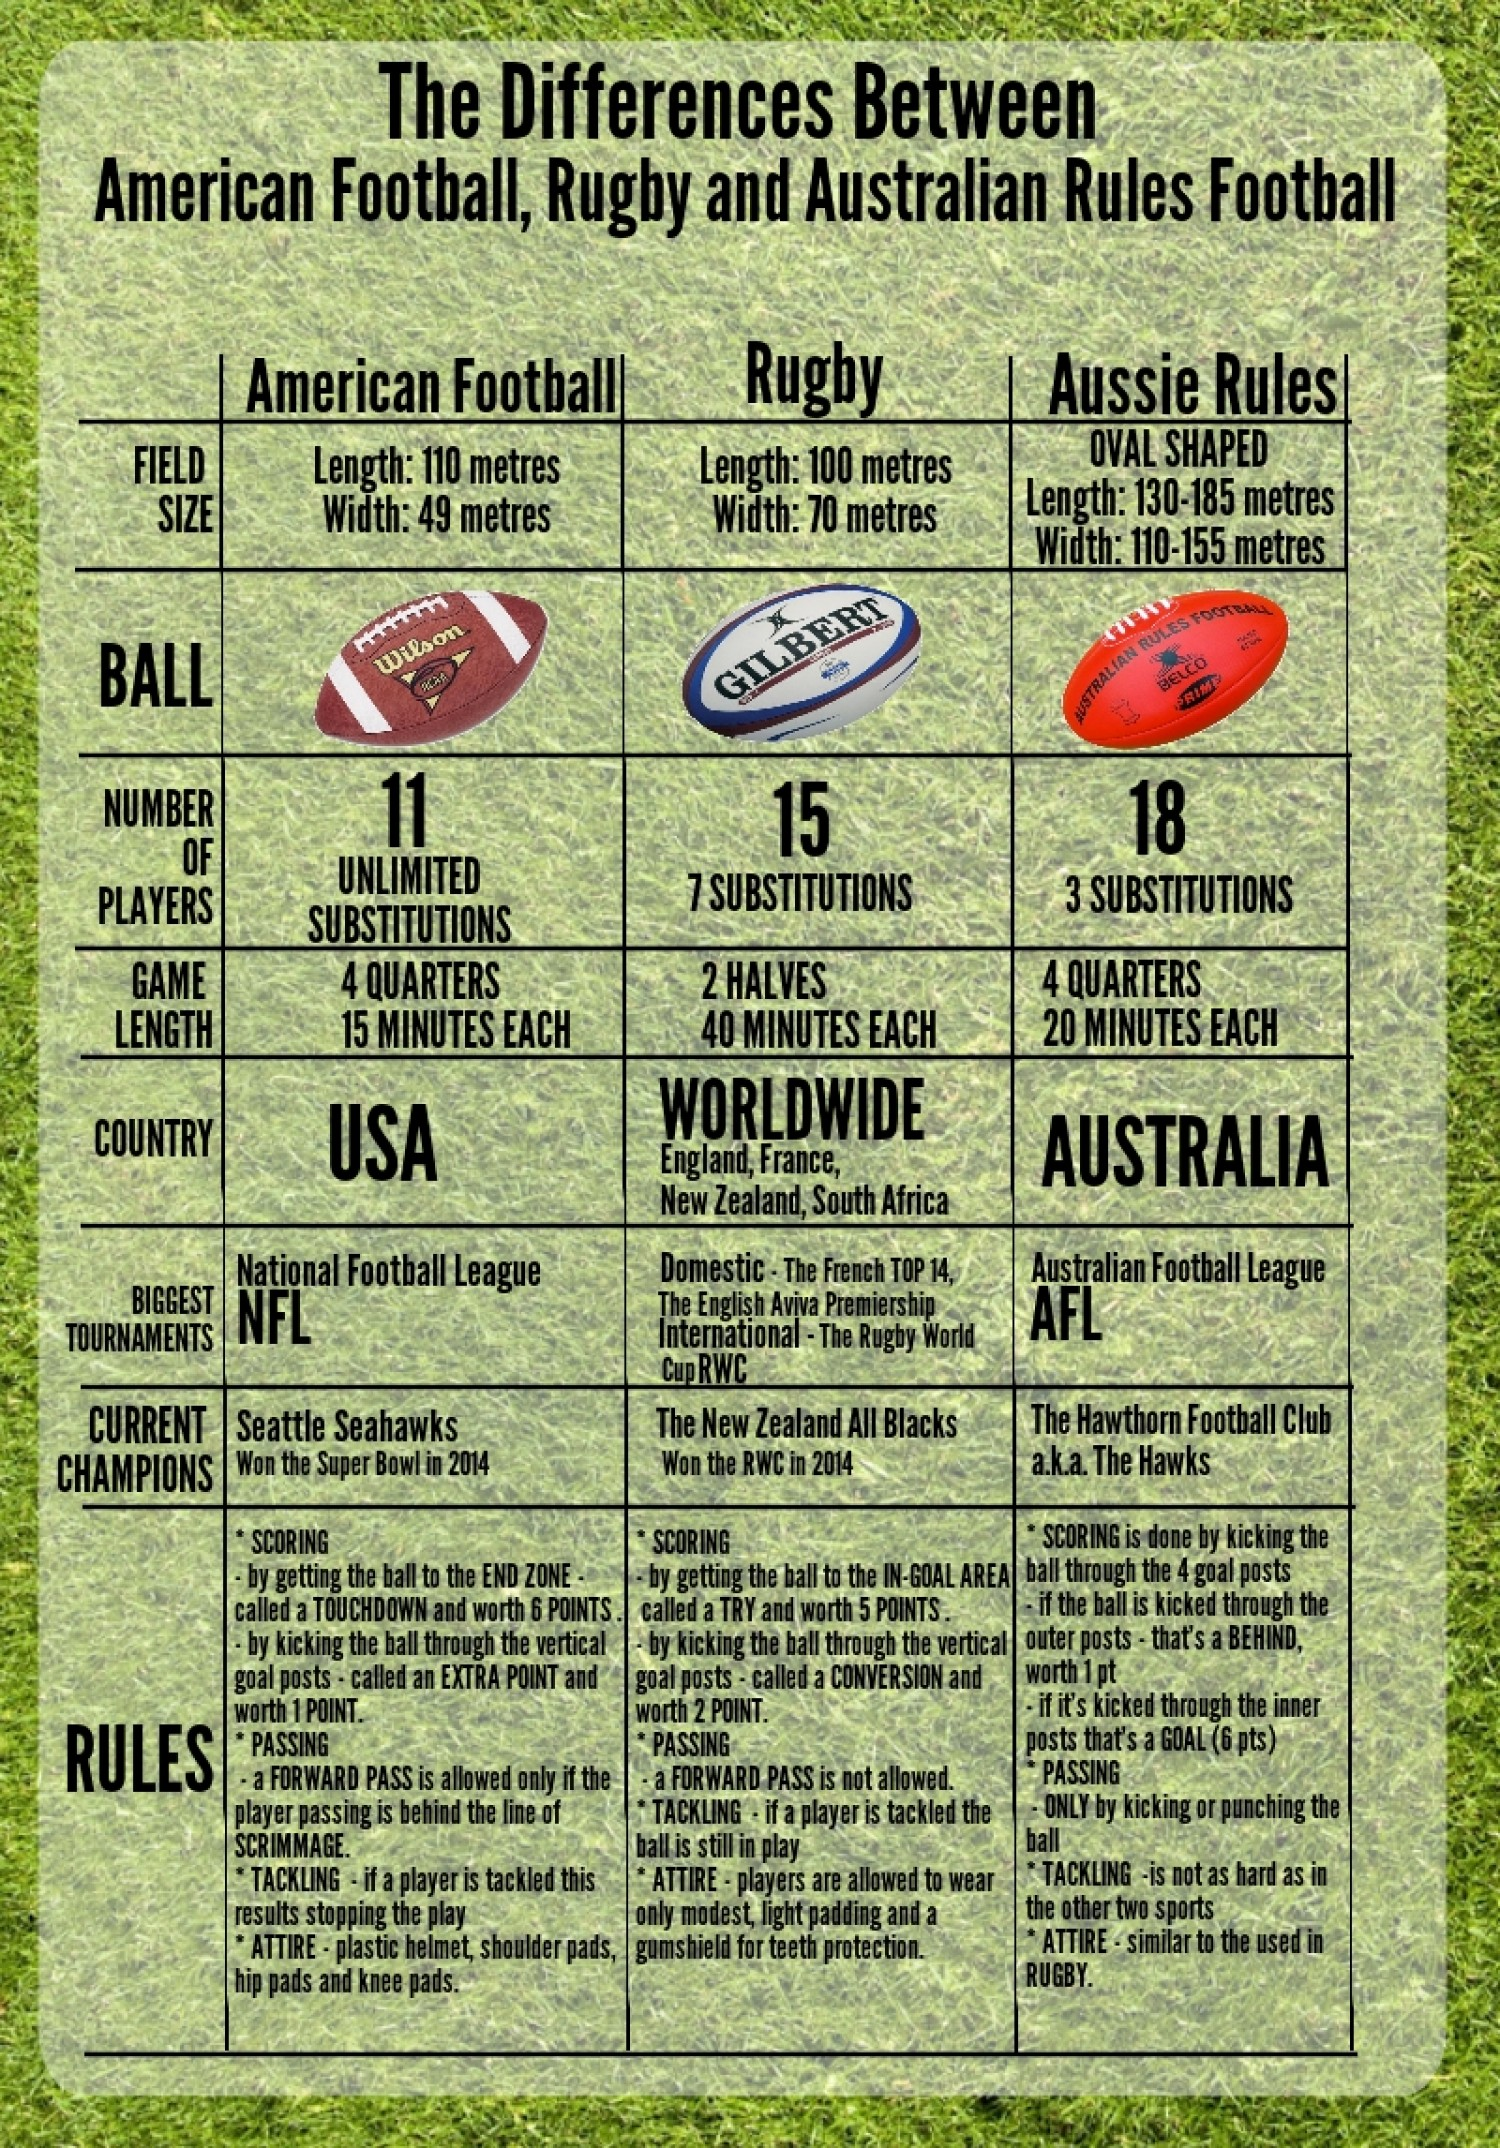 what-is-the-difference-between-american-football-rugby-and-australian-football_534fe8d9c351d_w1500